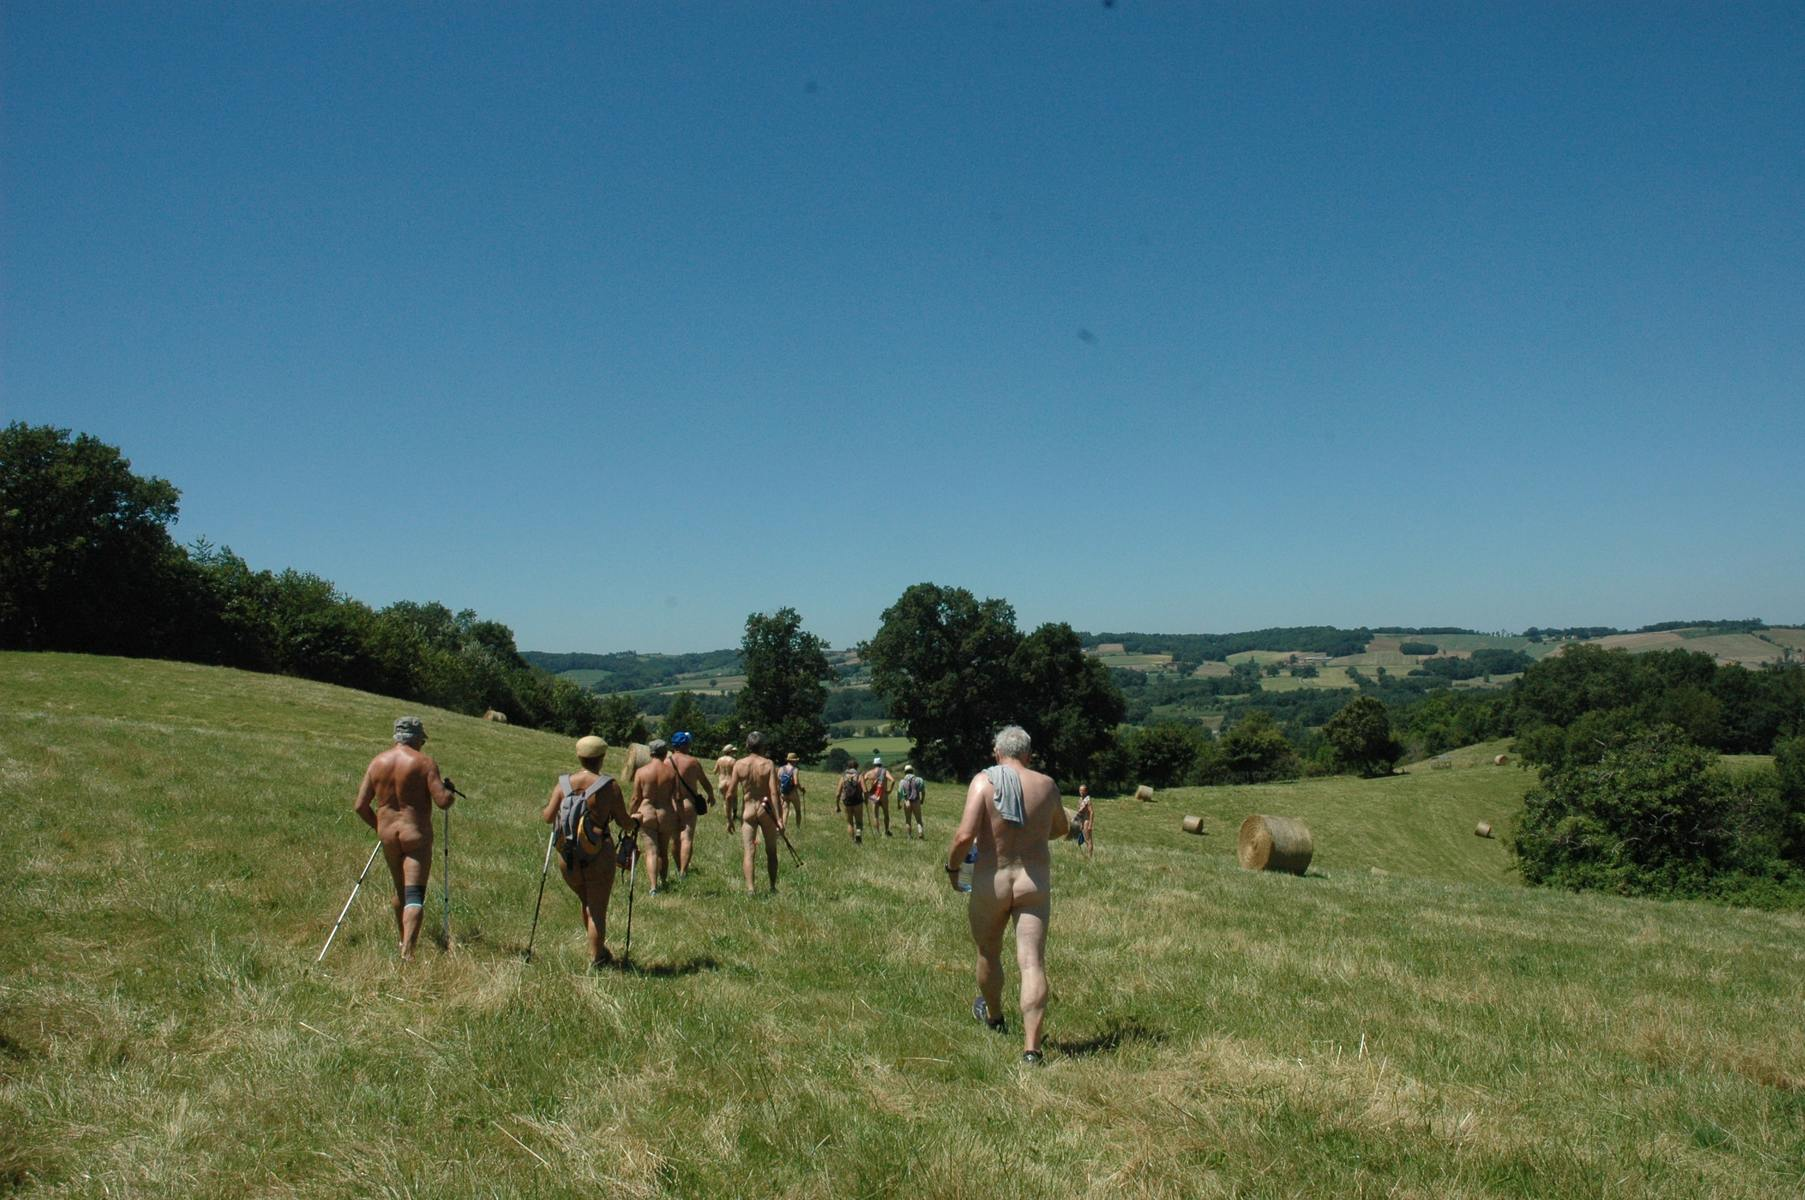 Naked Hiking: Enjoying nature in your most natural way